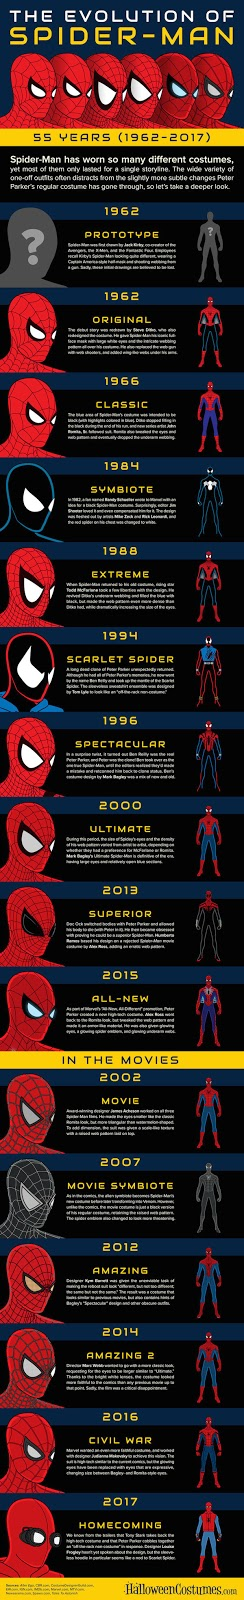 osw.zone The Evolution of Spider-Man (1962 - 2017) by HalloweenCostumes.com